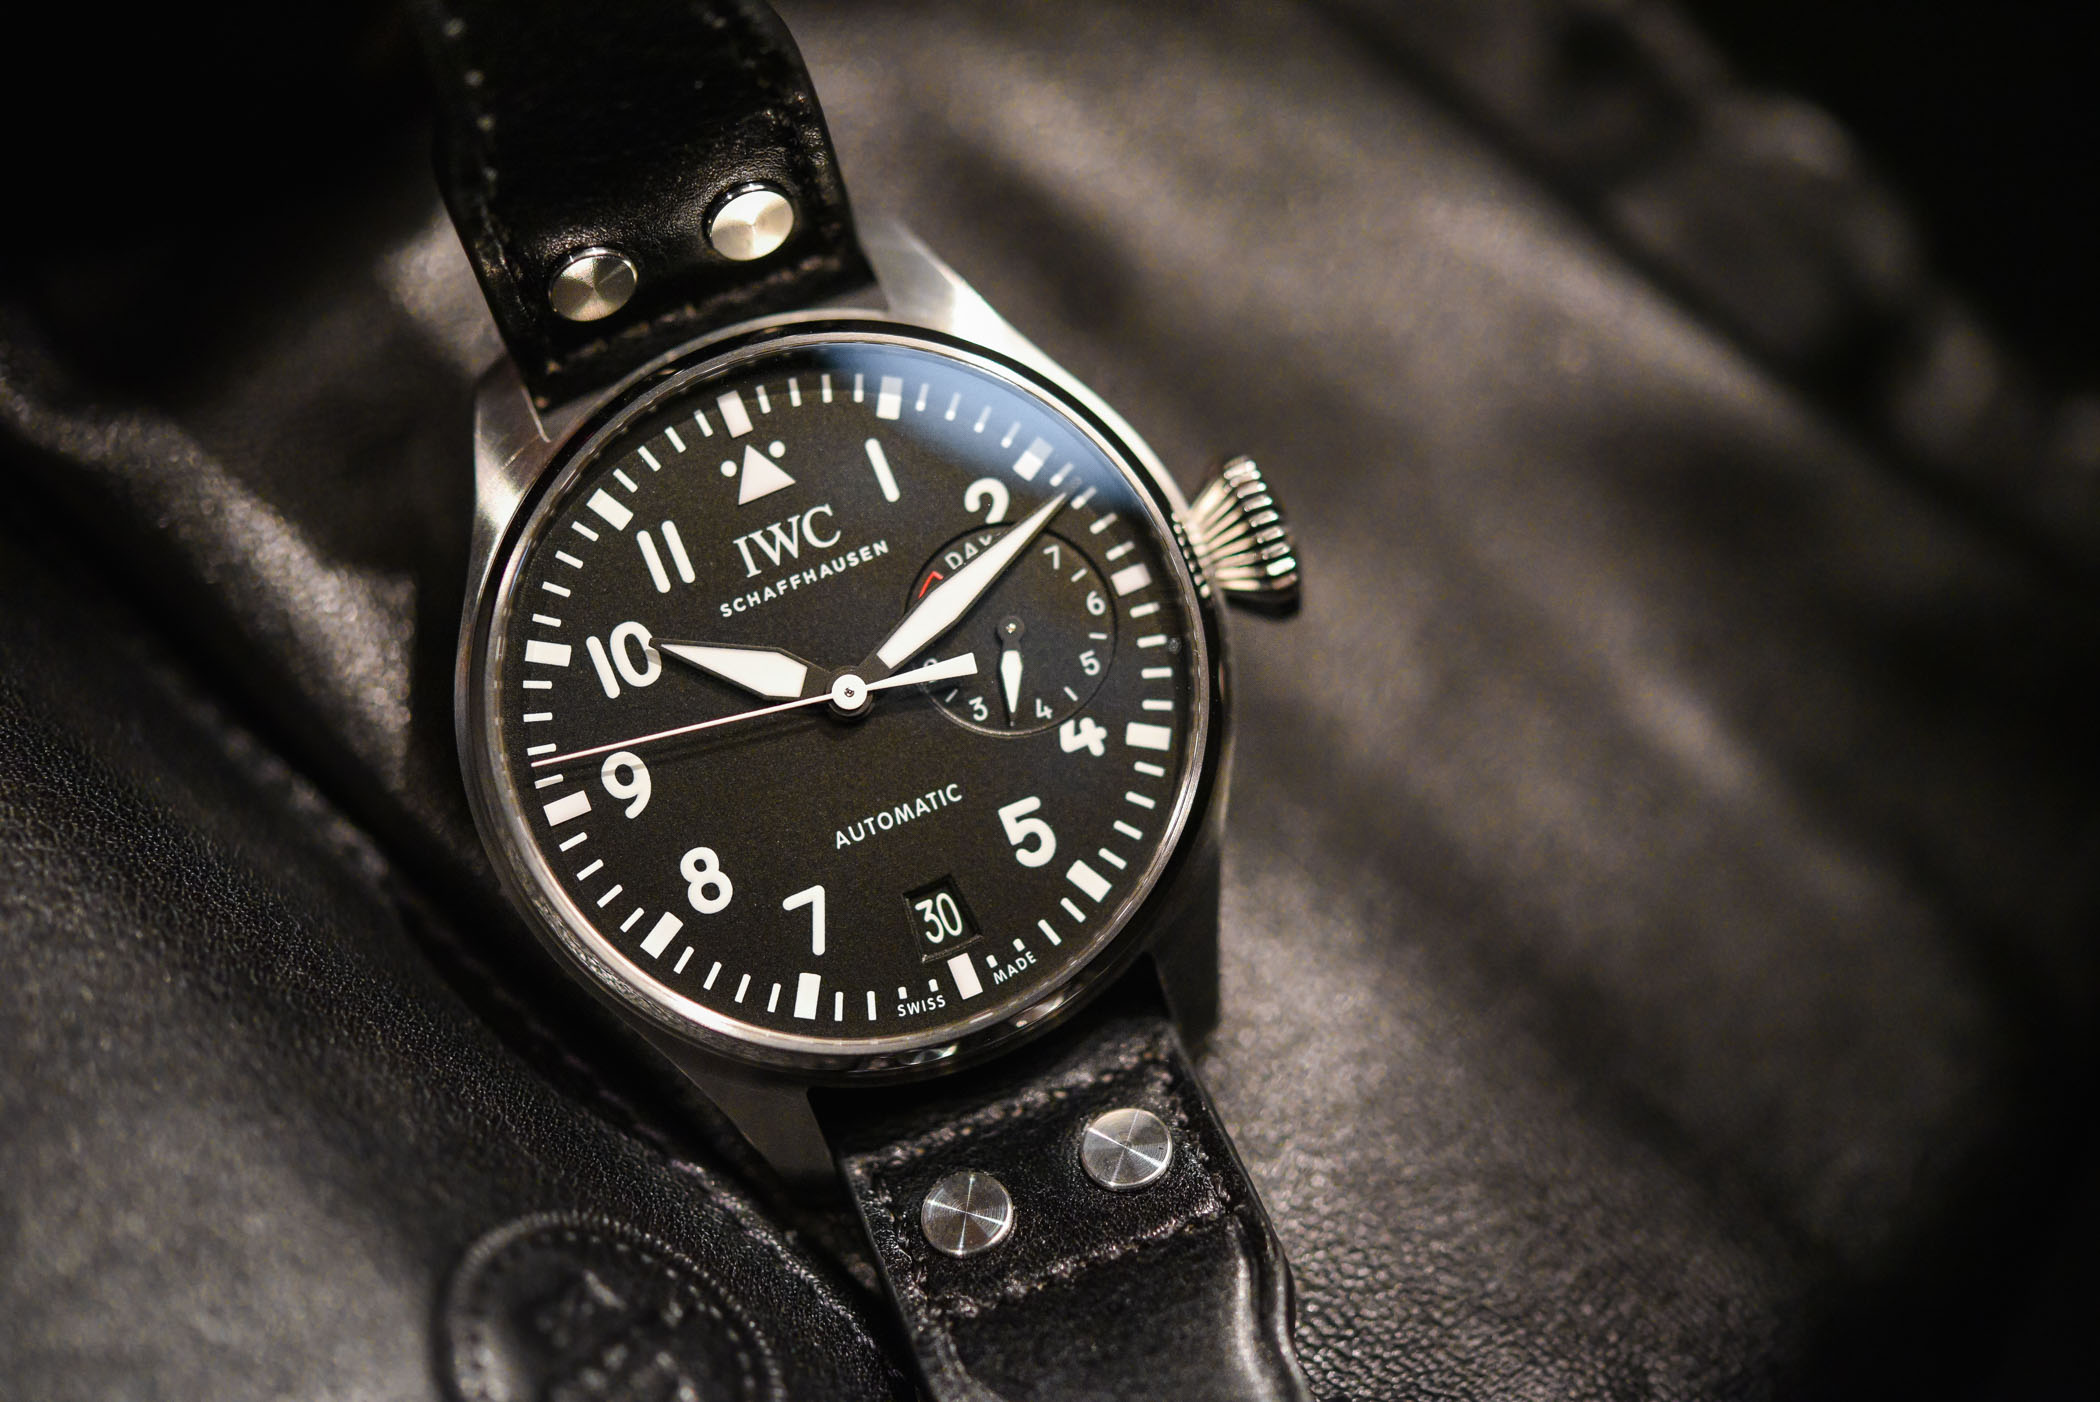 b60015ab2 Buying Guide - 5 of The Most Iconic Pilot Watches You Can Buy In 2018